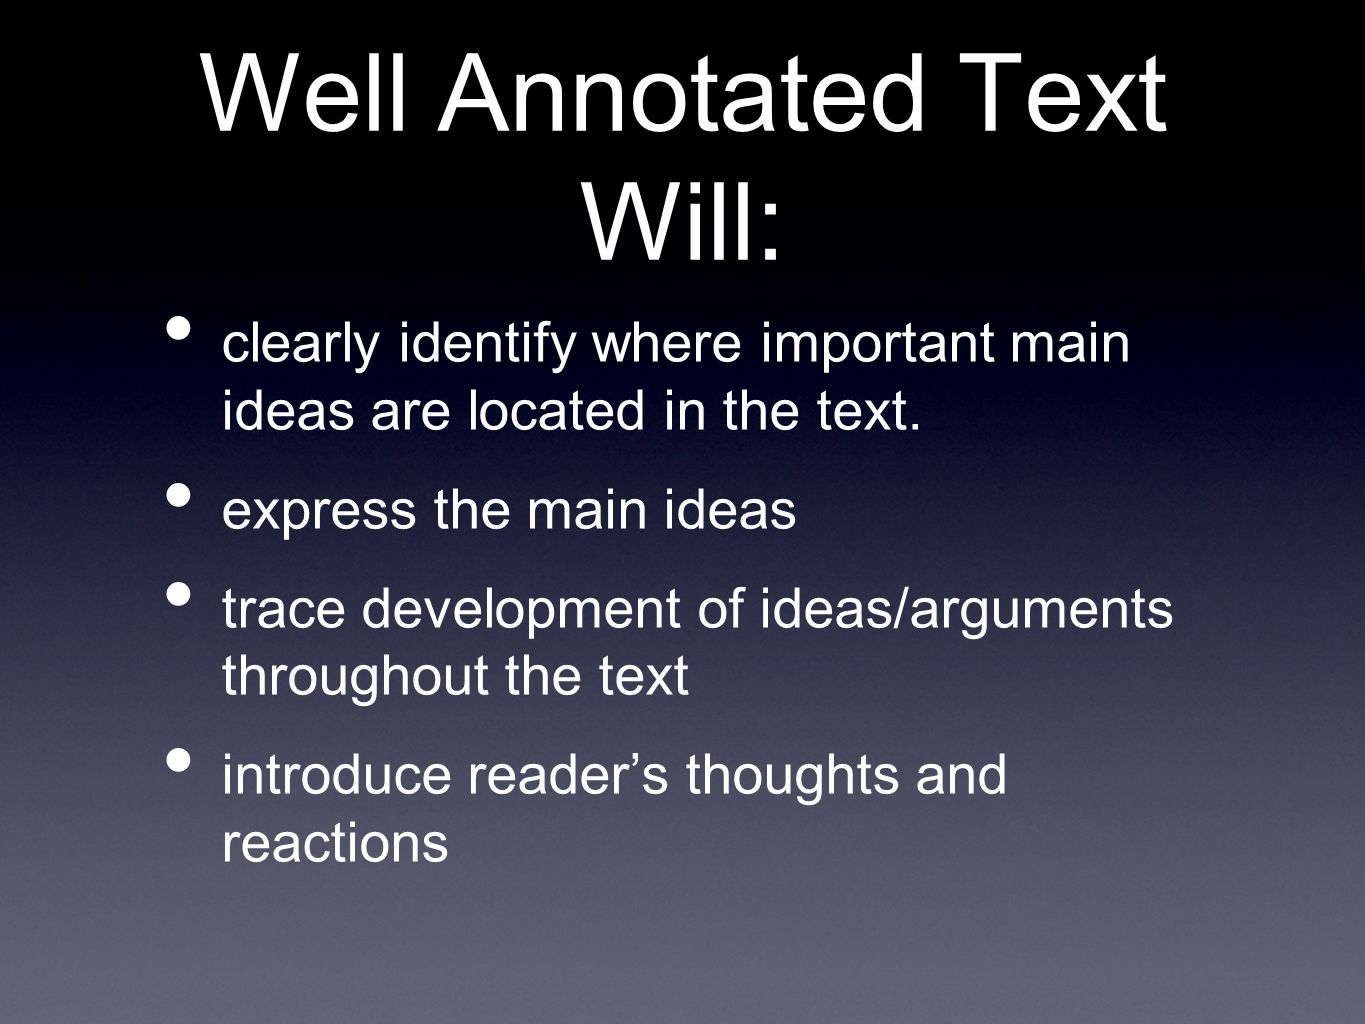 Well Annotated Text Will: clearly identify where important main ideas are located in the text.